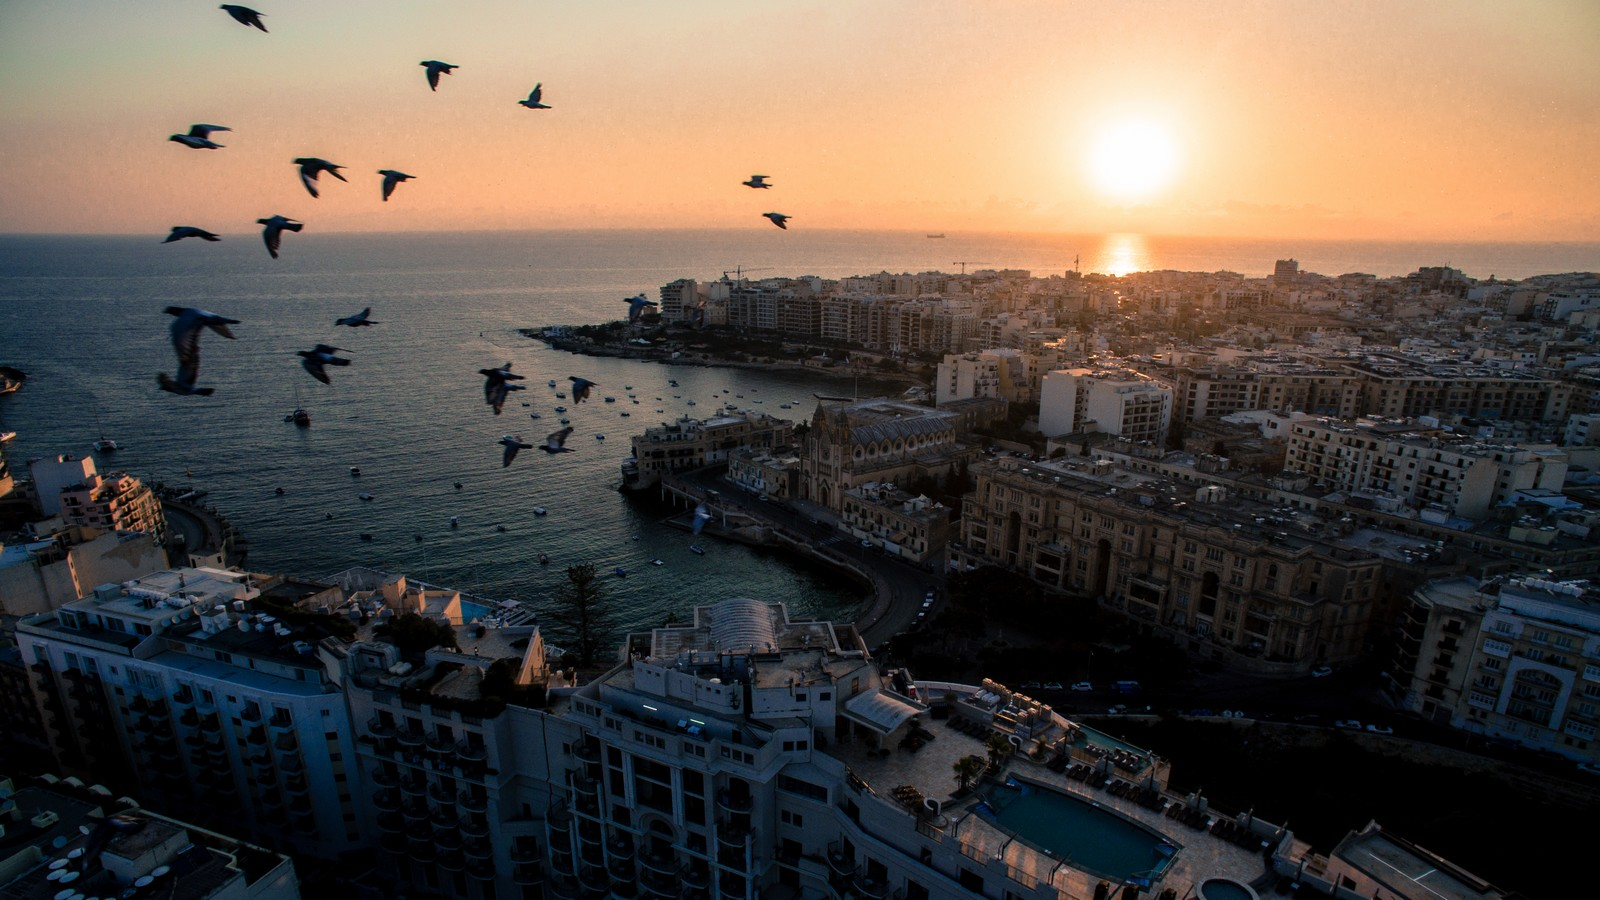 Sunrise at Le Meridien Malta